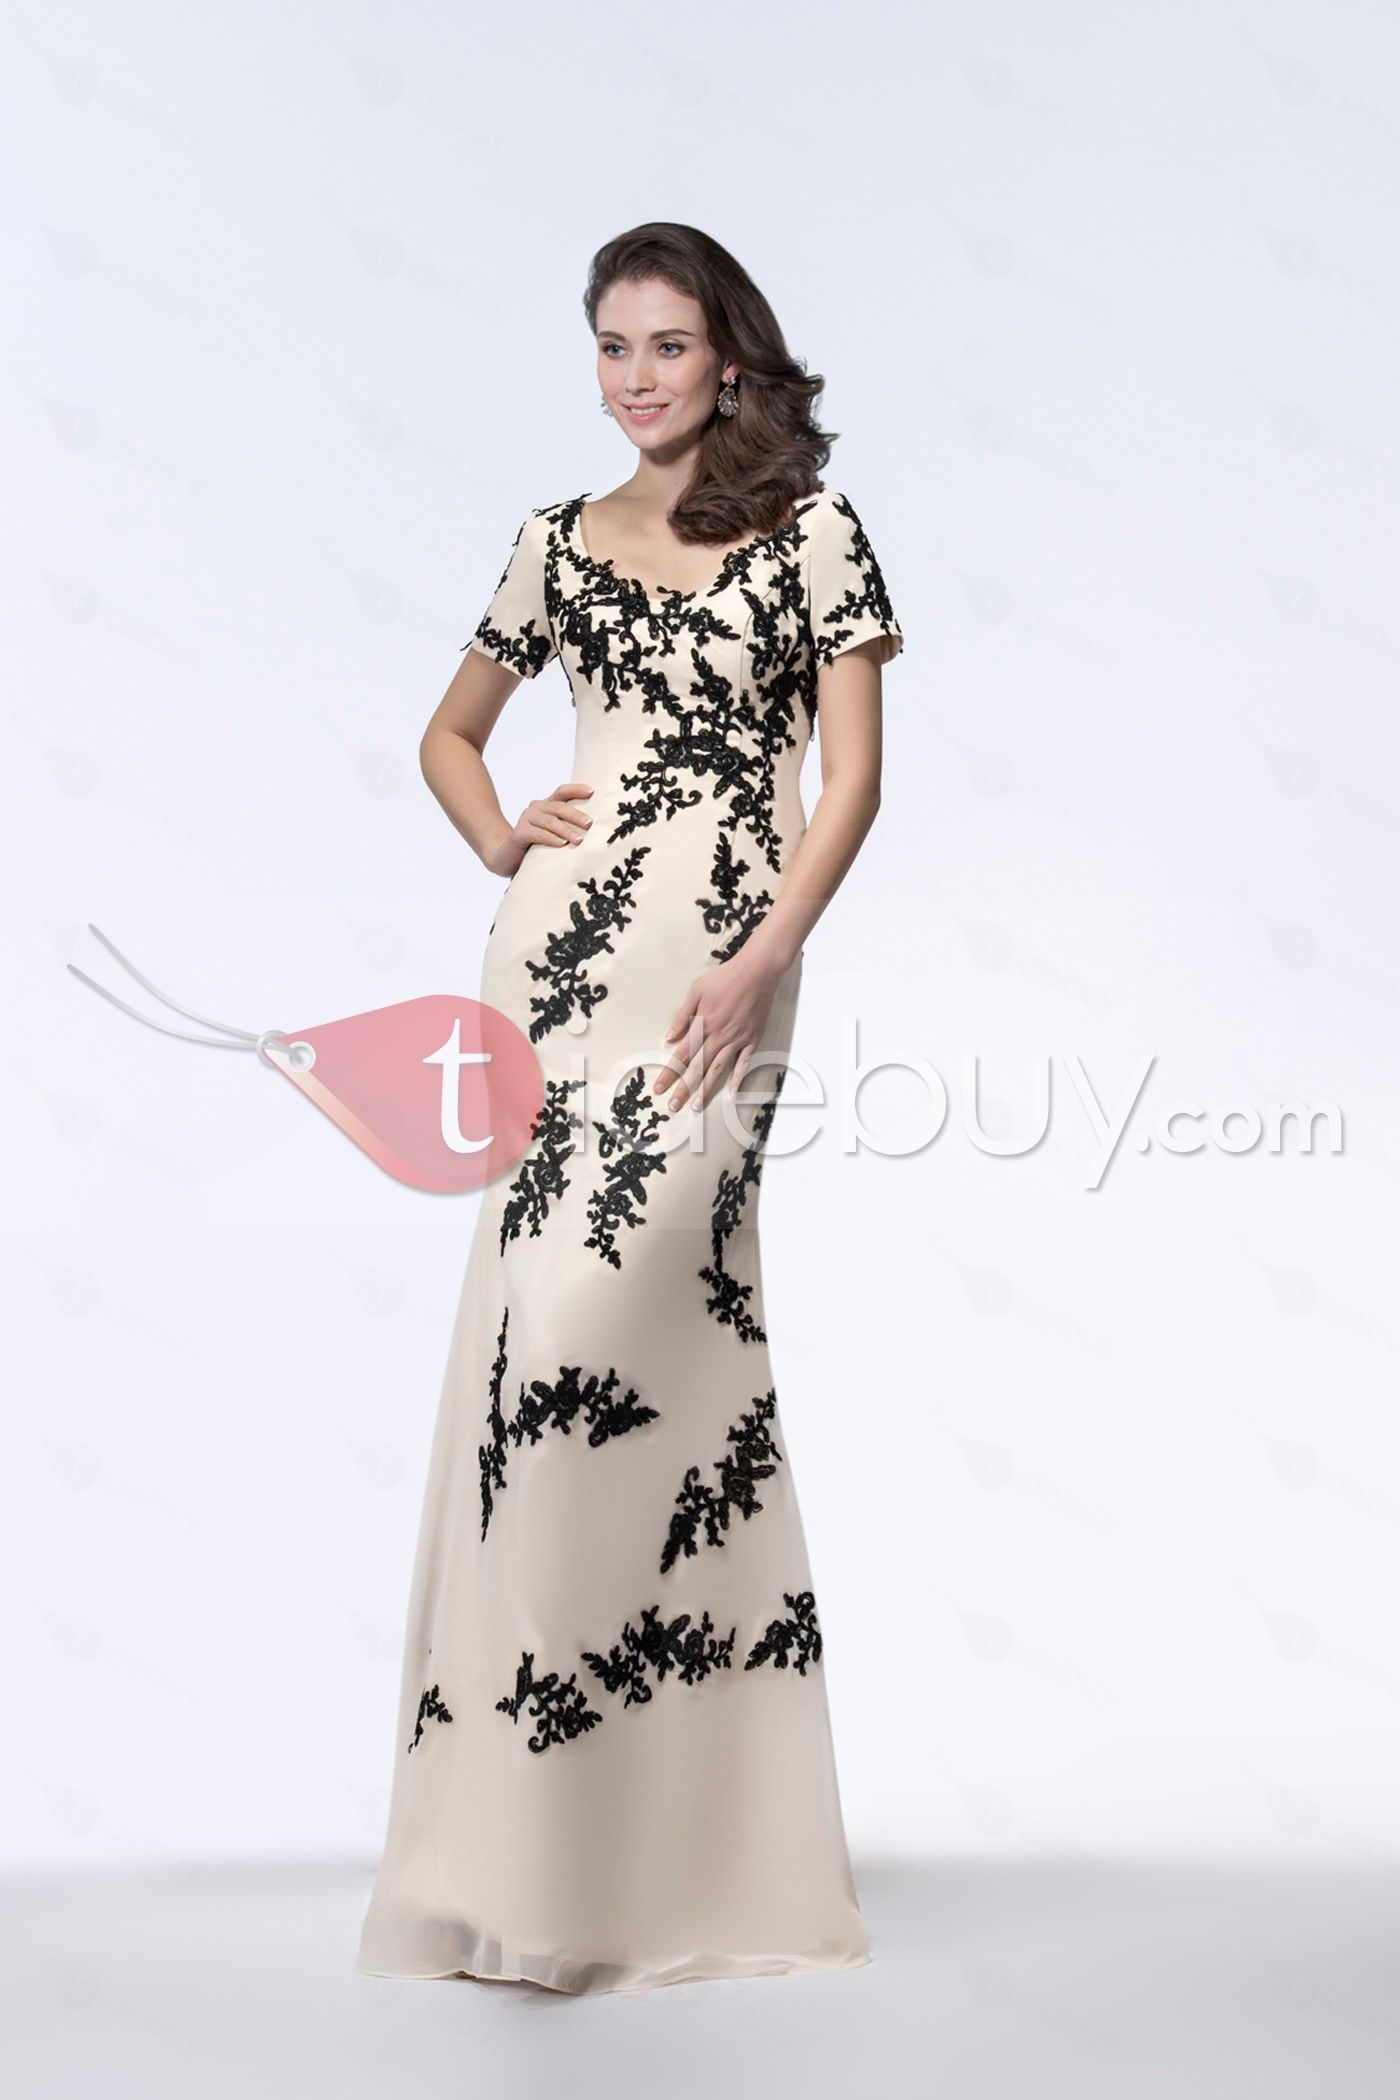 Sparkling Scoop Neck Appliques Short Sleeves Sheath Evening Dress